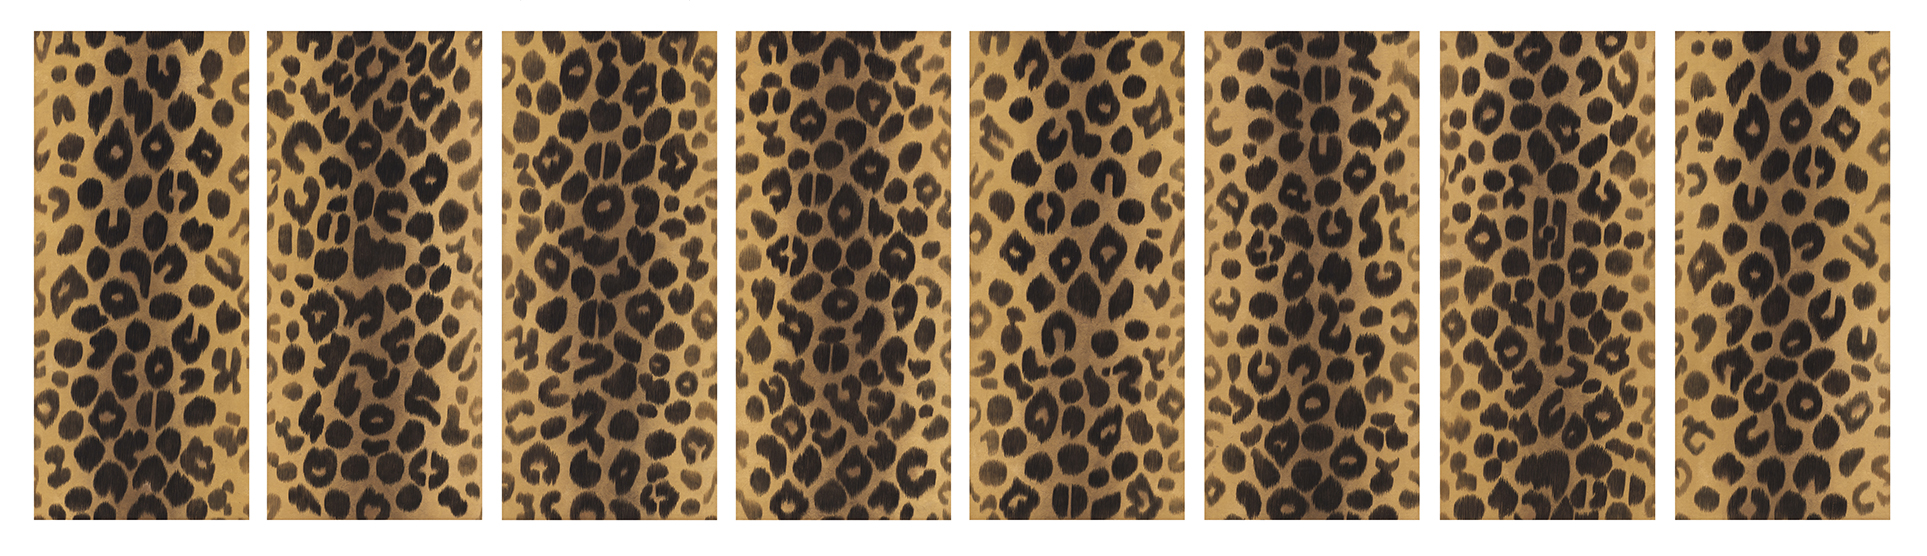 Screen decorated with Leopard, 2010, Color on Korean paper, (40.5 x 90 cm) x 8panels